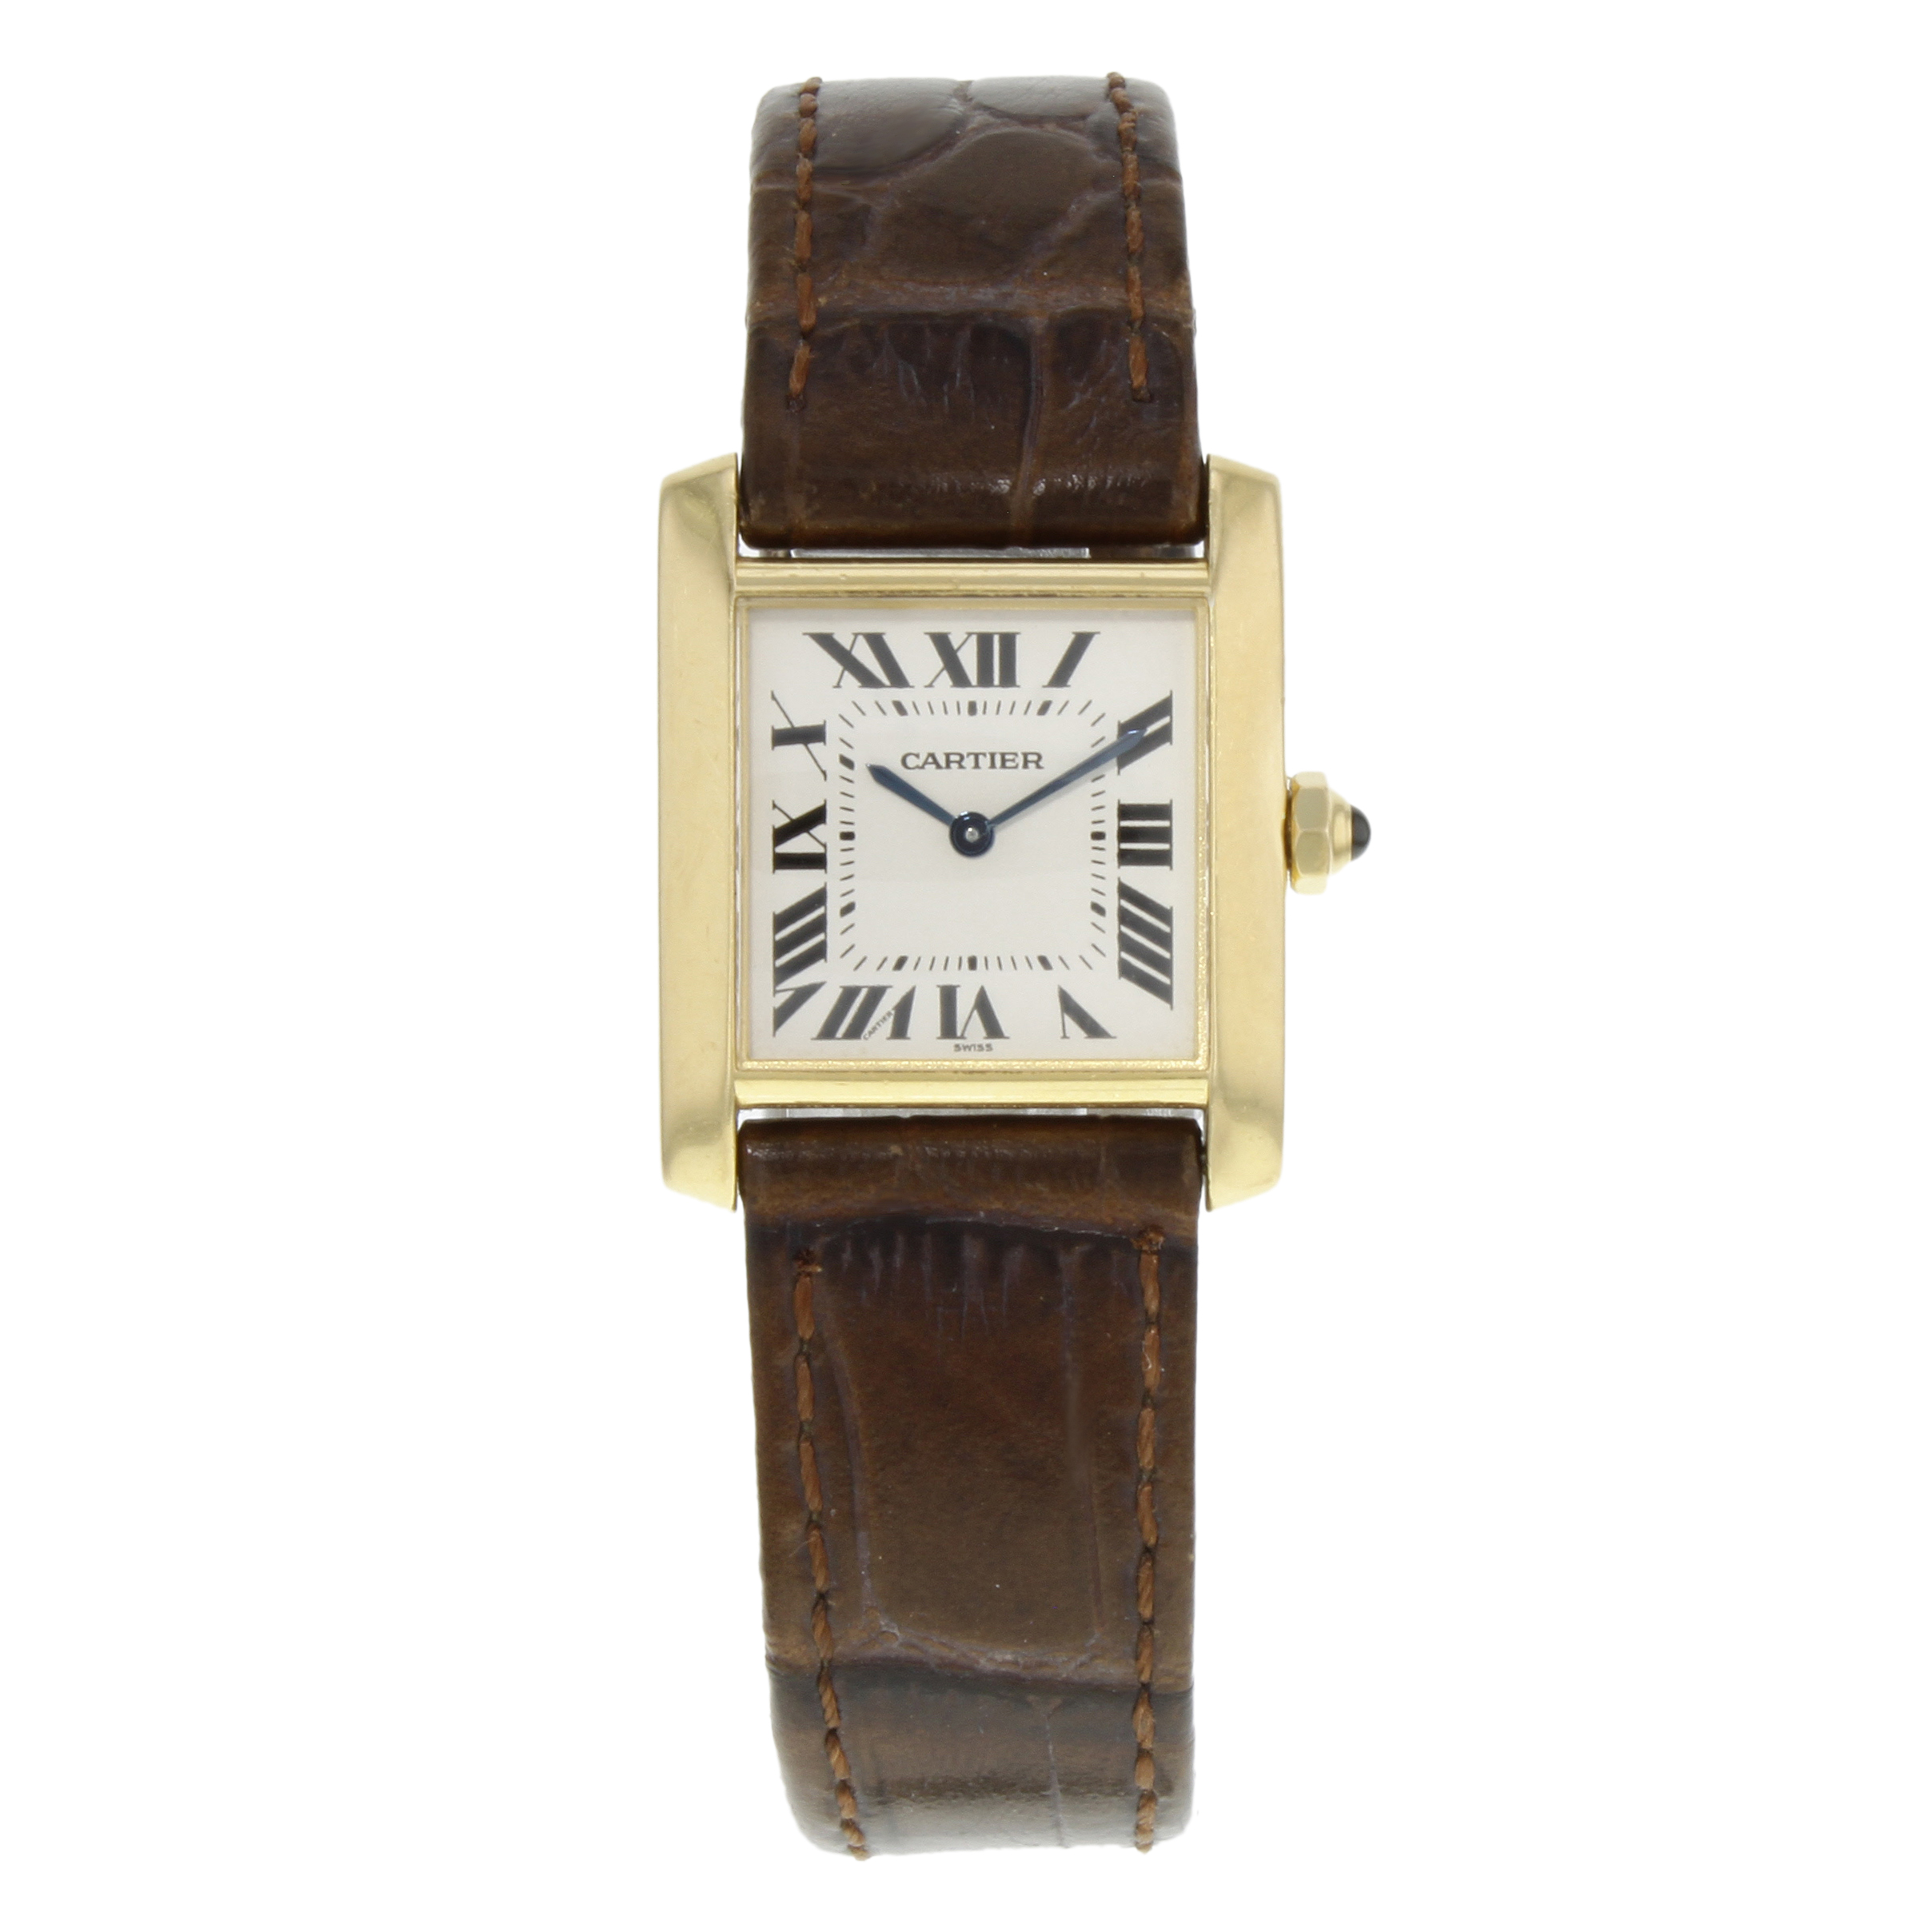 Cartier Tank Francaise Square Face 18K Yellow Gold Quartz Ladies     Cartier Tank Francaise Square Face 18K Yellow Gold Quartz Ladies Watch 1821